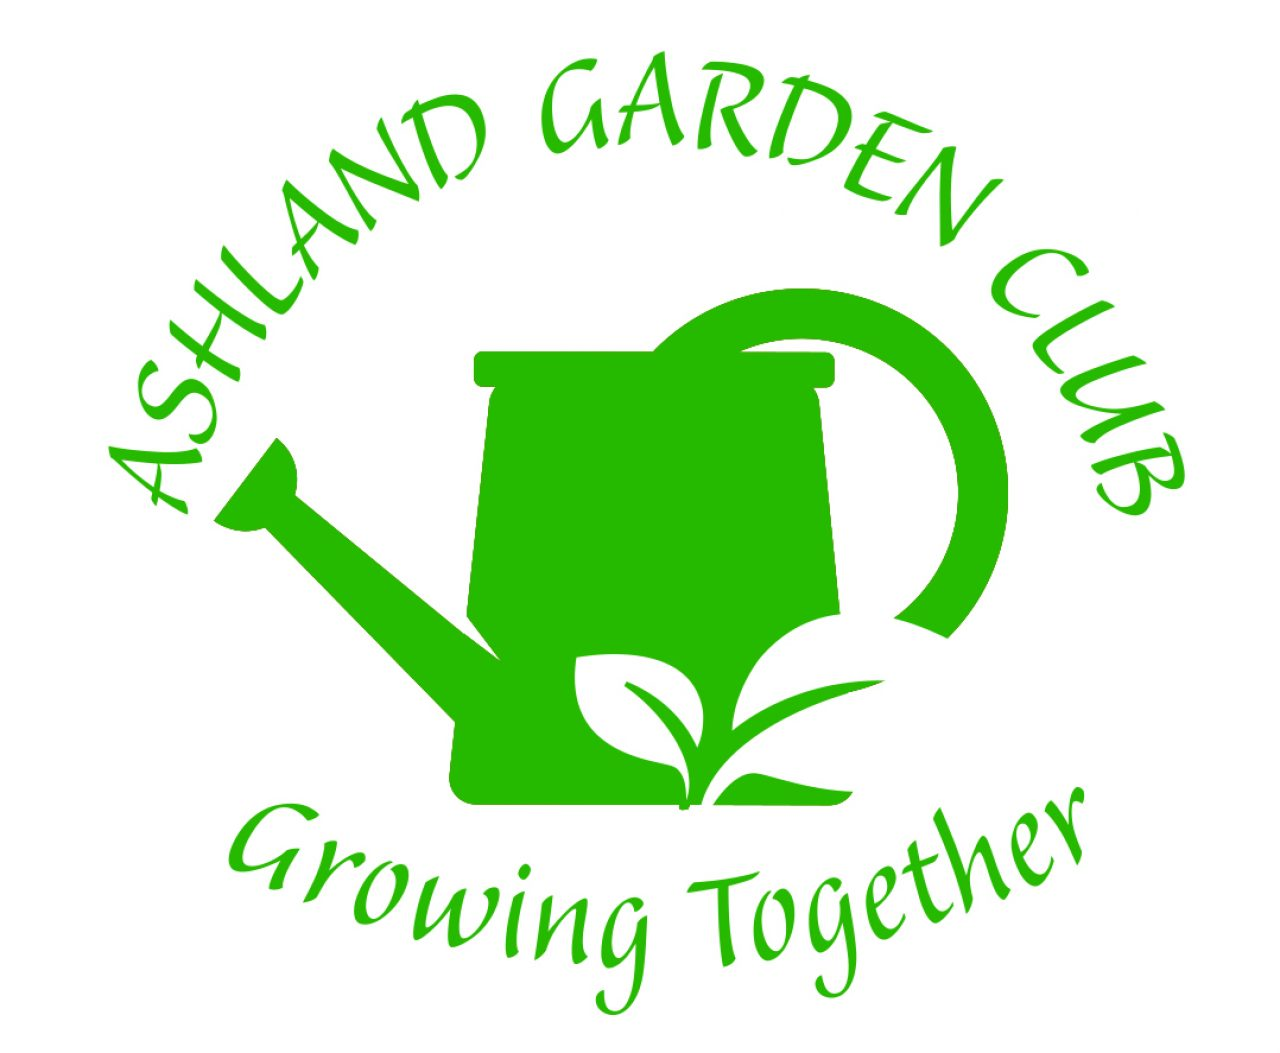 AGC Growing Together